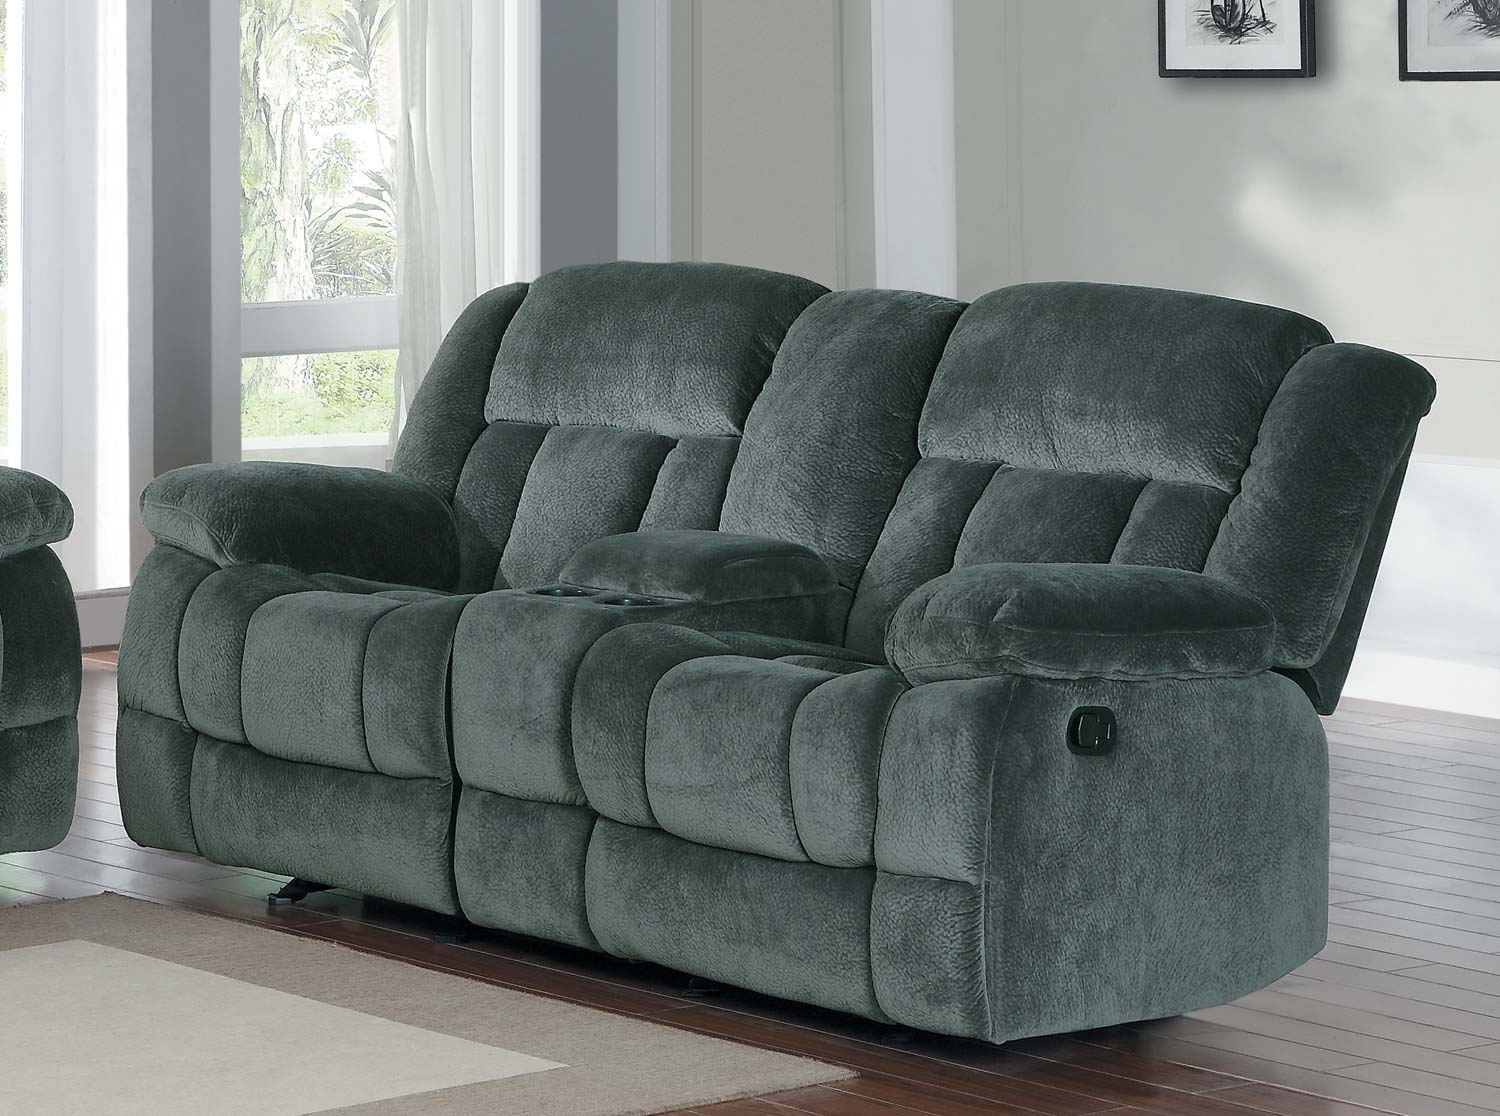 Homelegance Laurelton Reclining Sofa Set Charcoal Textured Plush Microfiber U9636cc 3 At